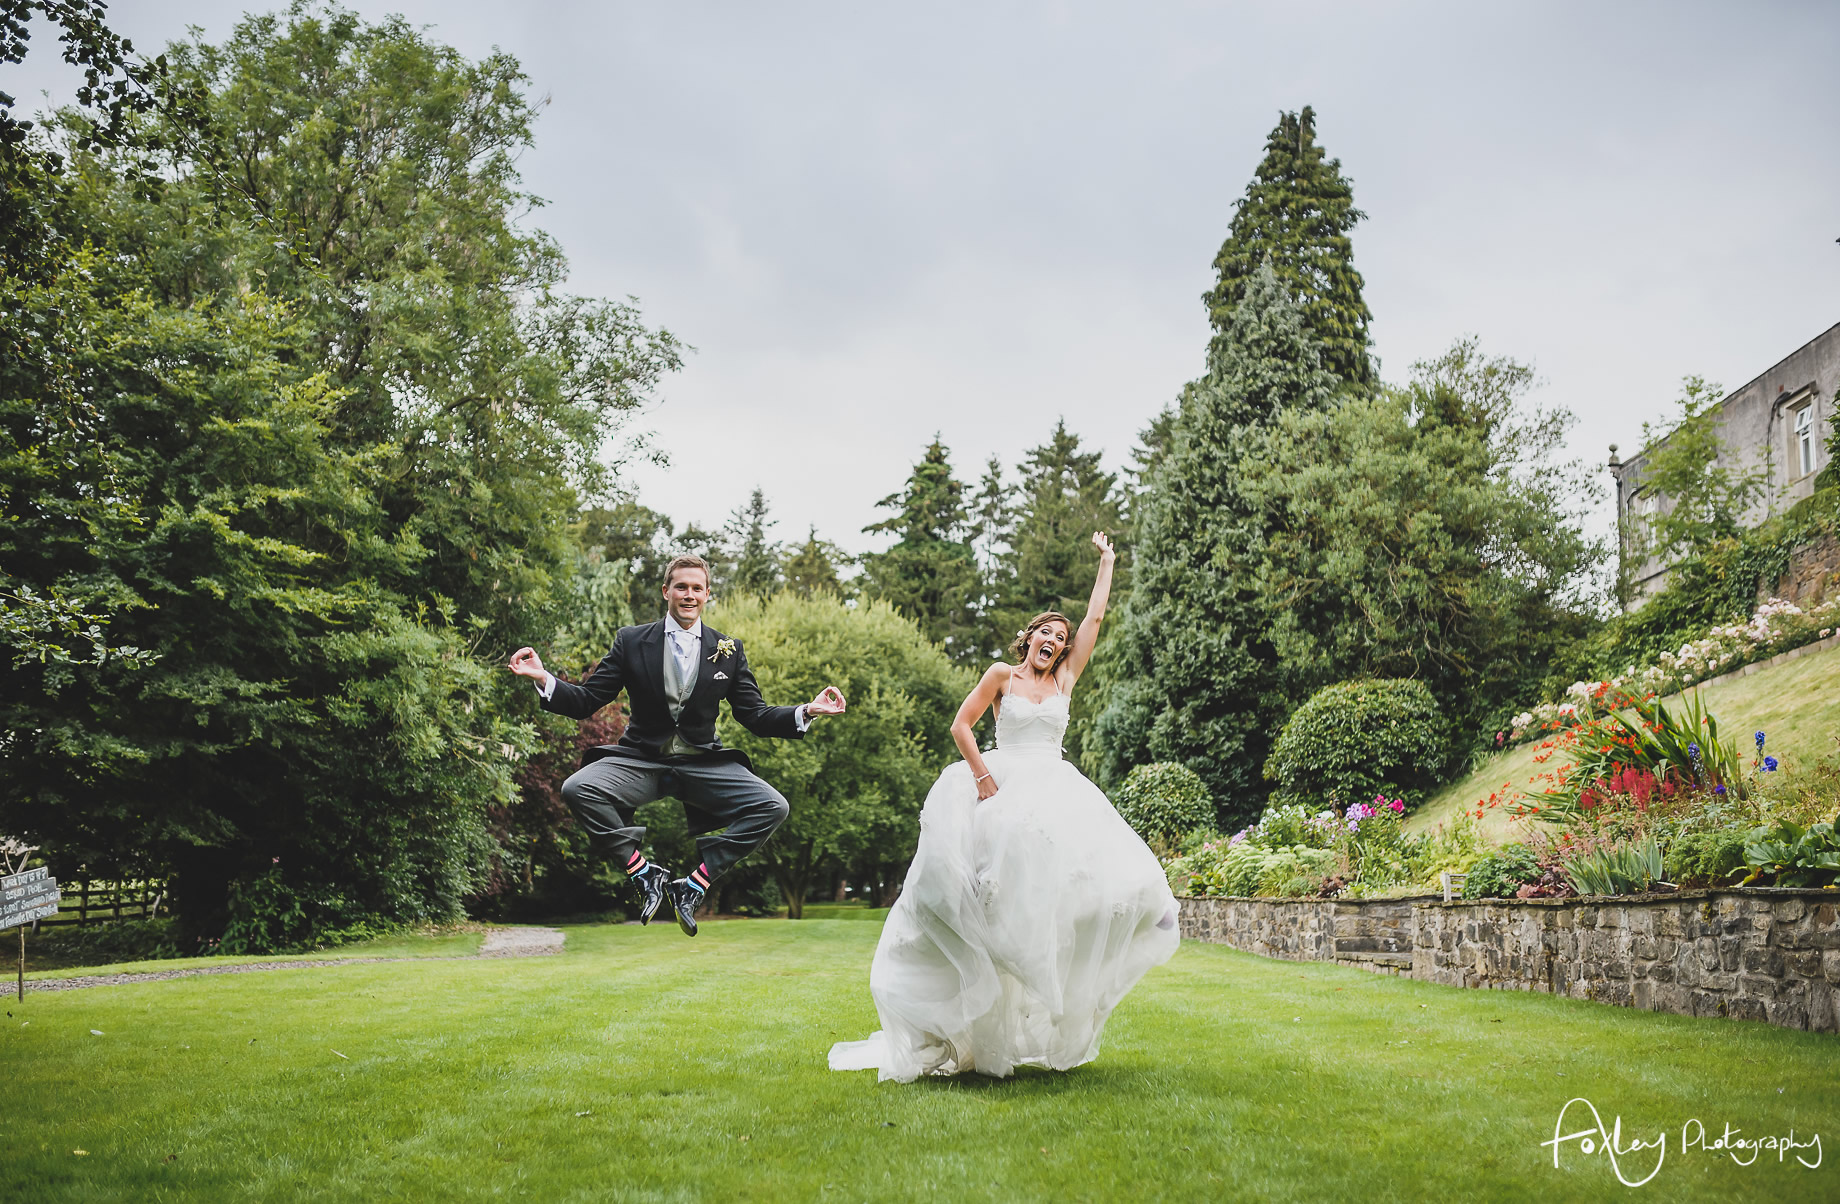 Claire and James' Wedding at Mitton Hall 137